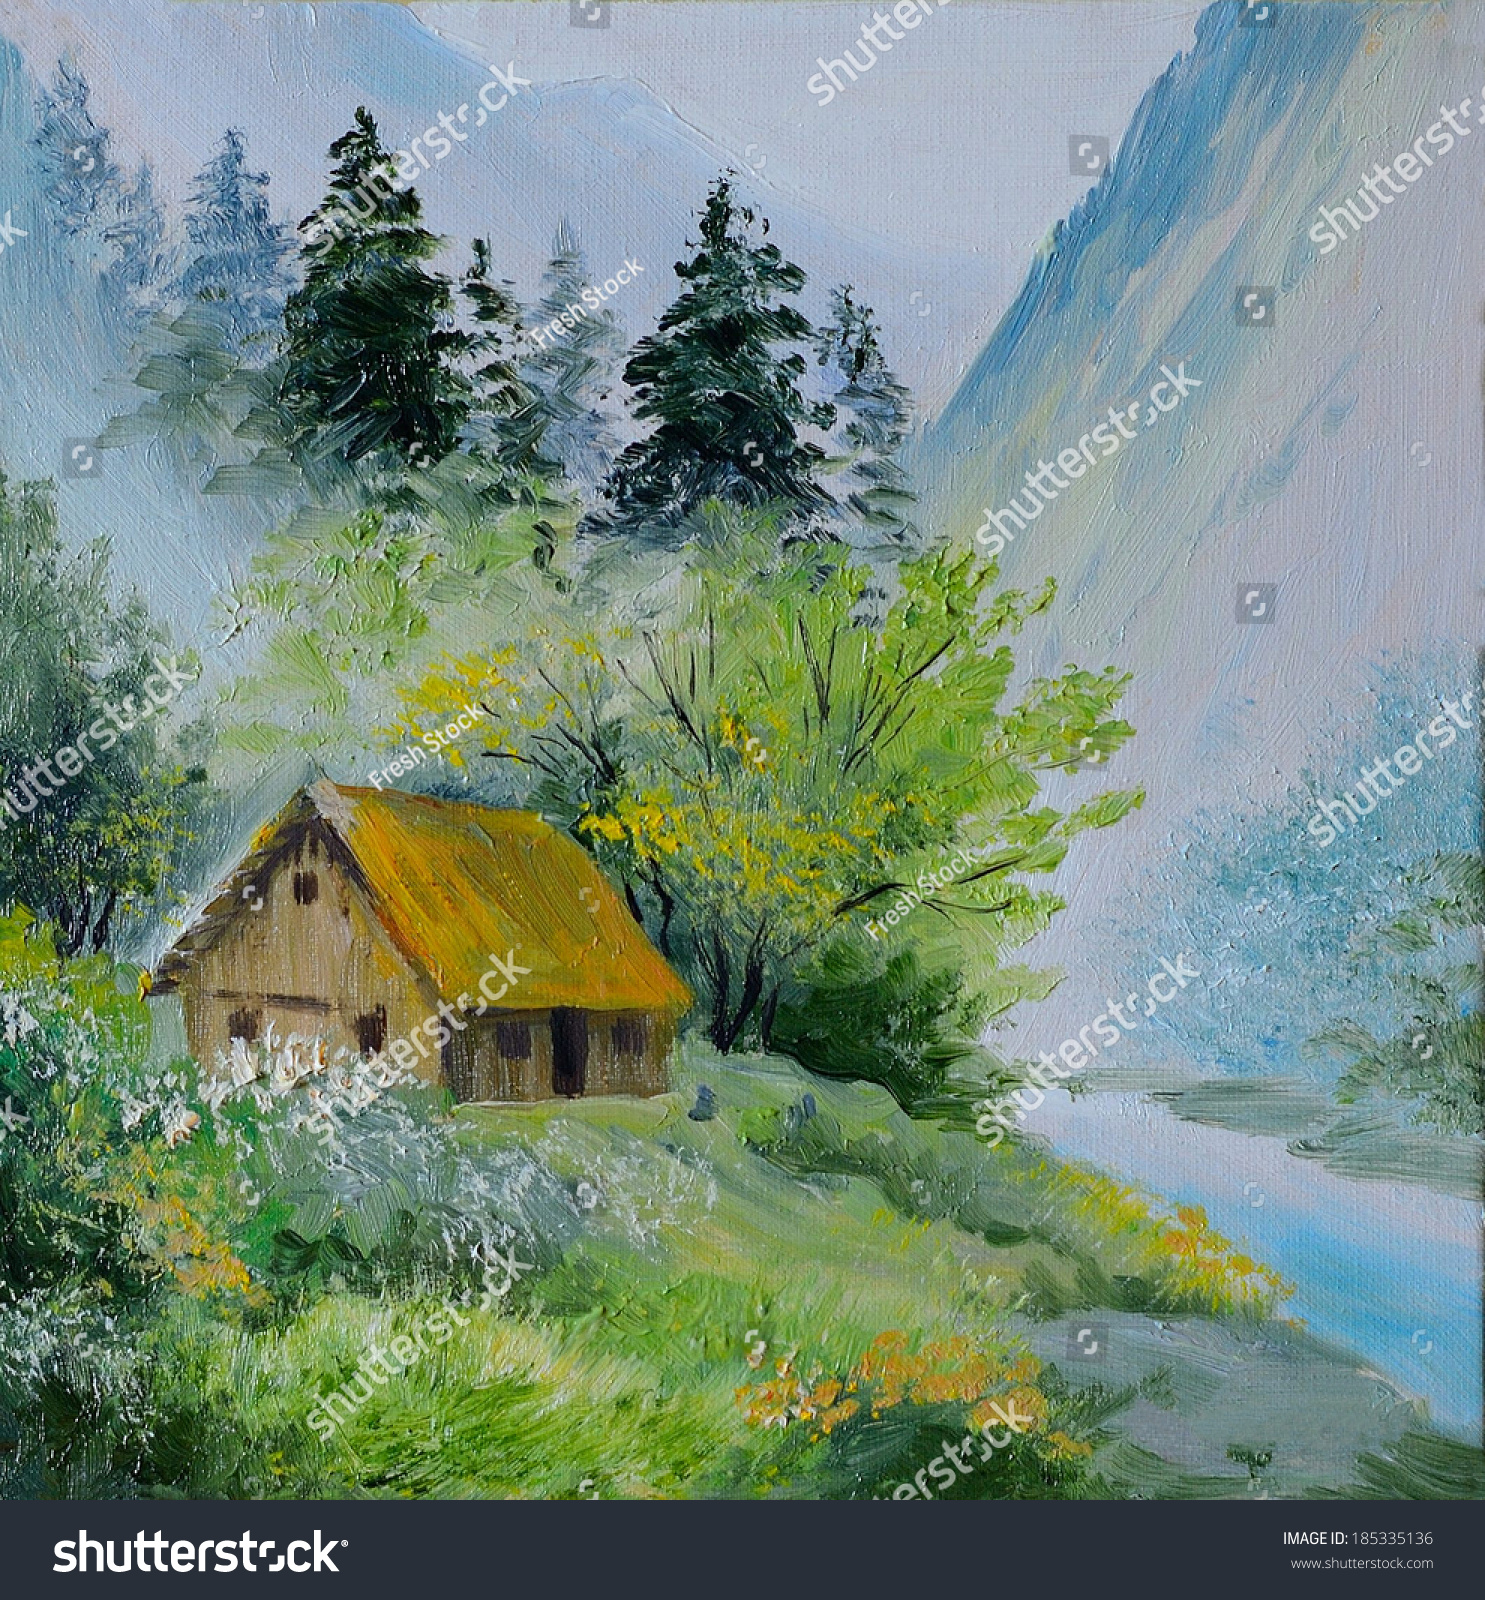 Oil painting landscape mountains house mountains stock - House in the mountains ...